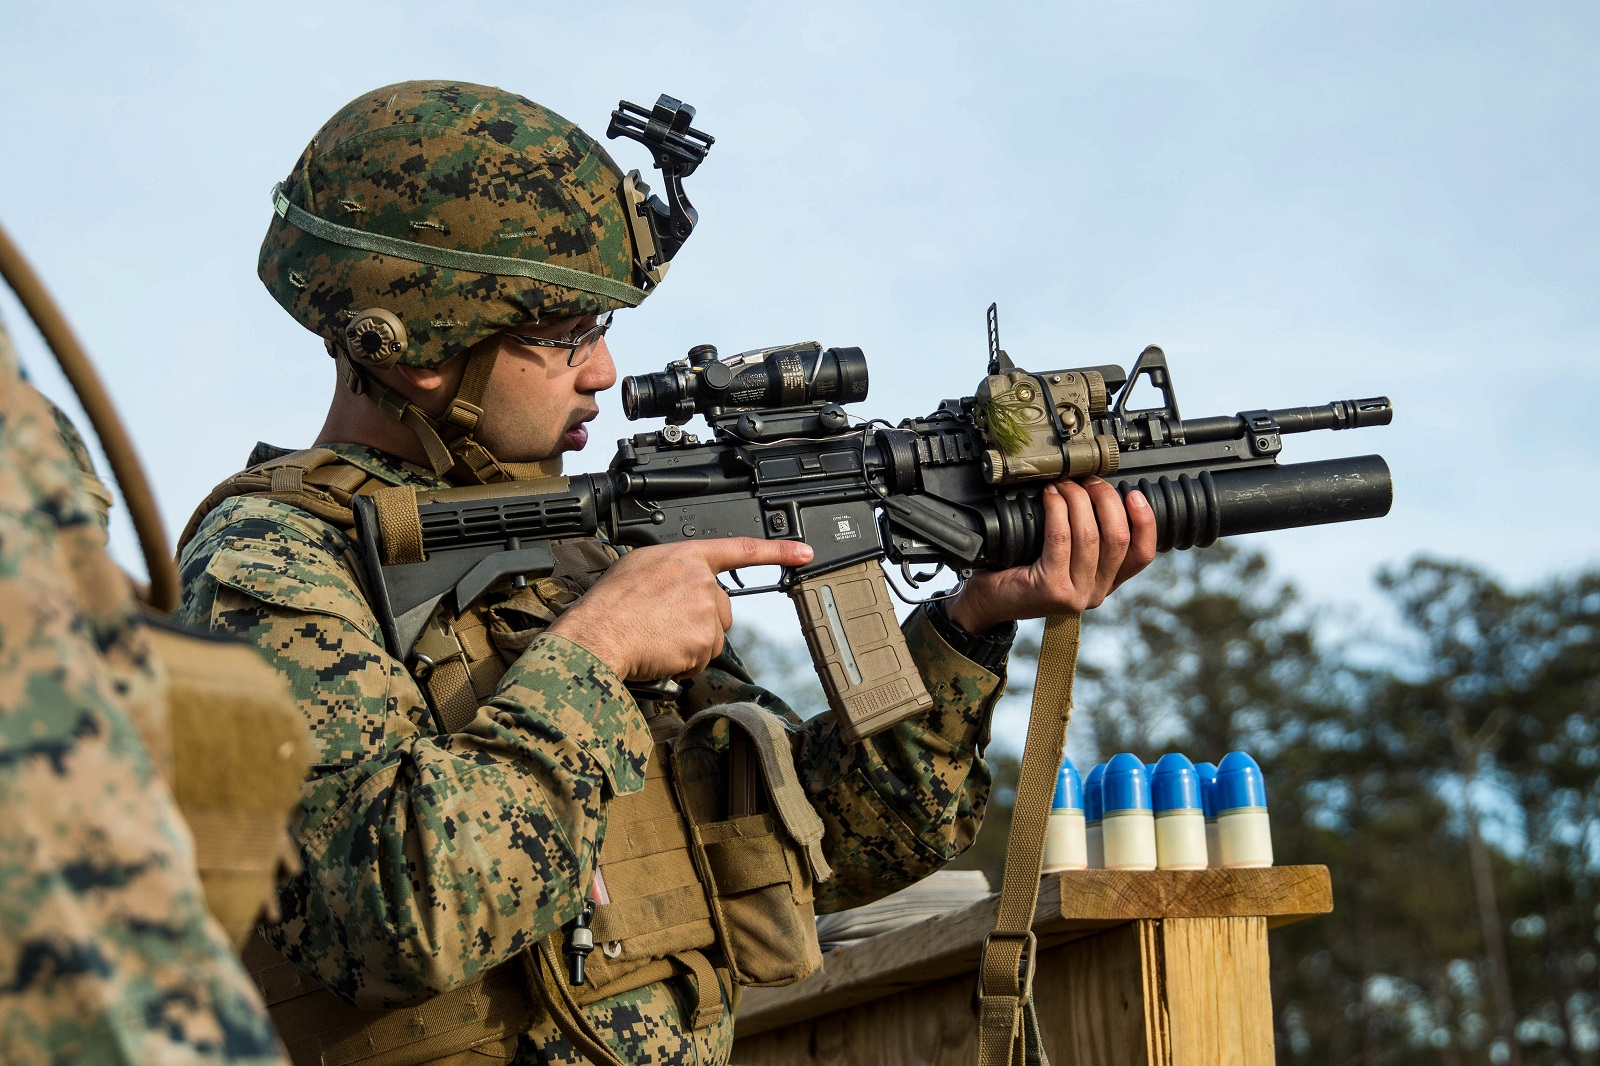 The Marines are Finally Getting Their Hands On a New Grenade Launcher